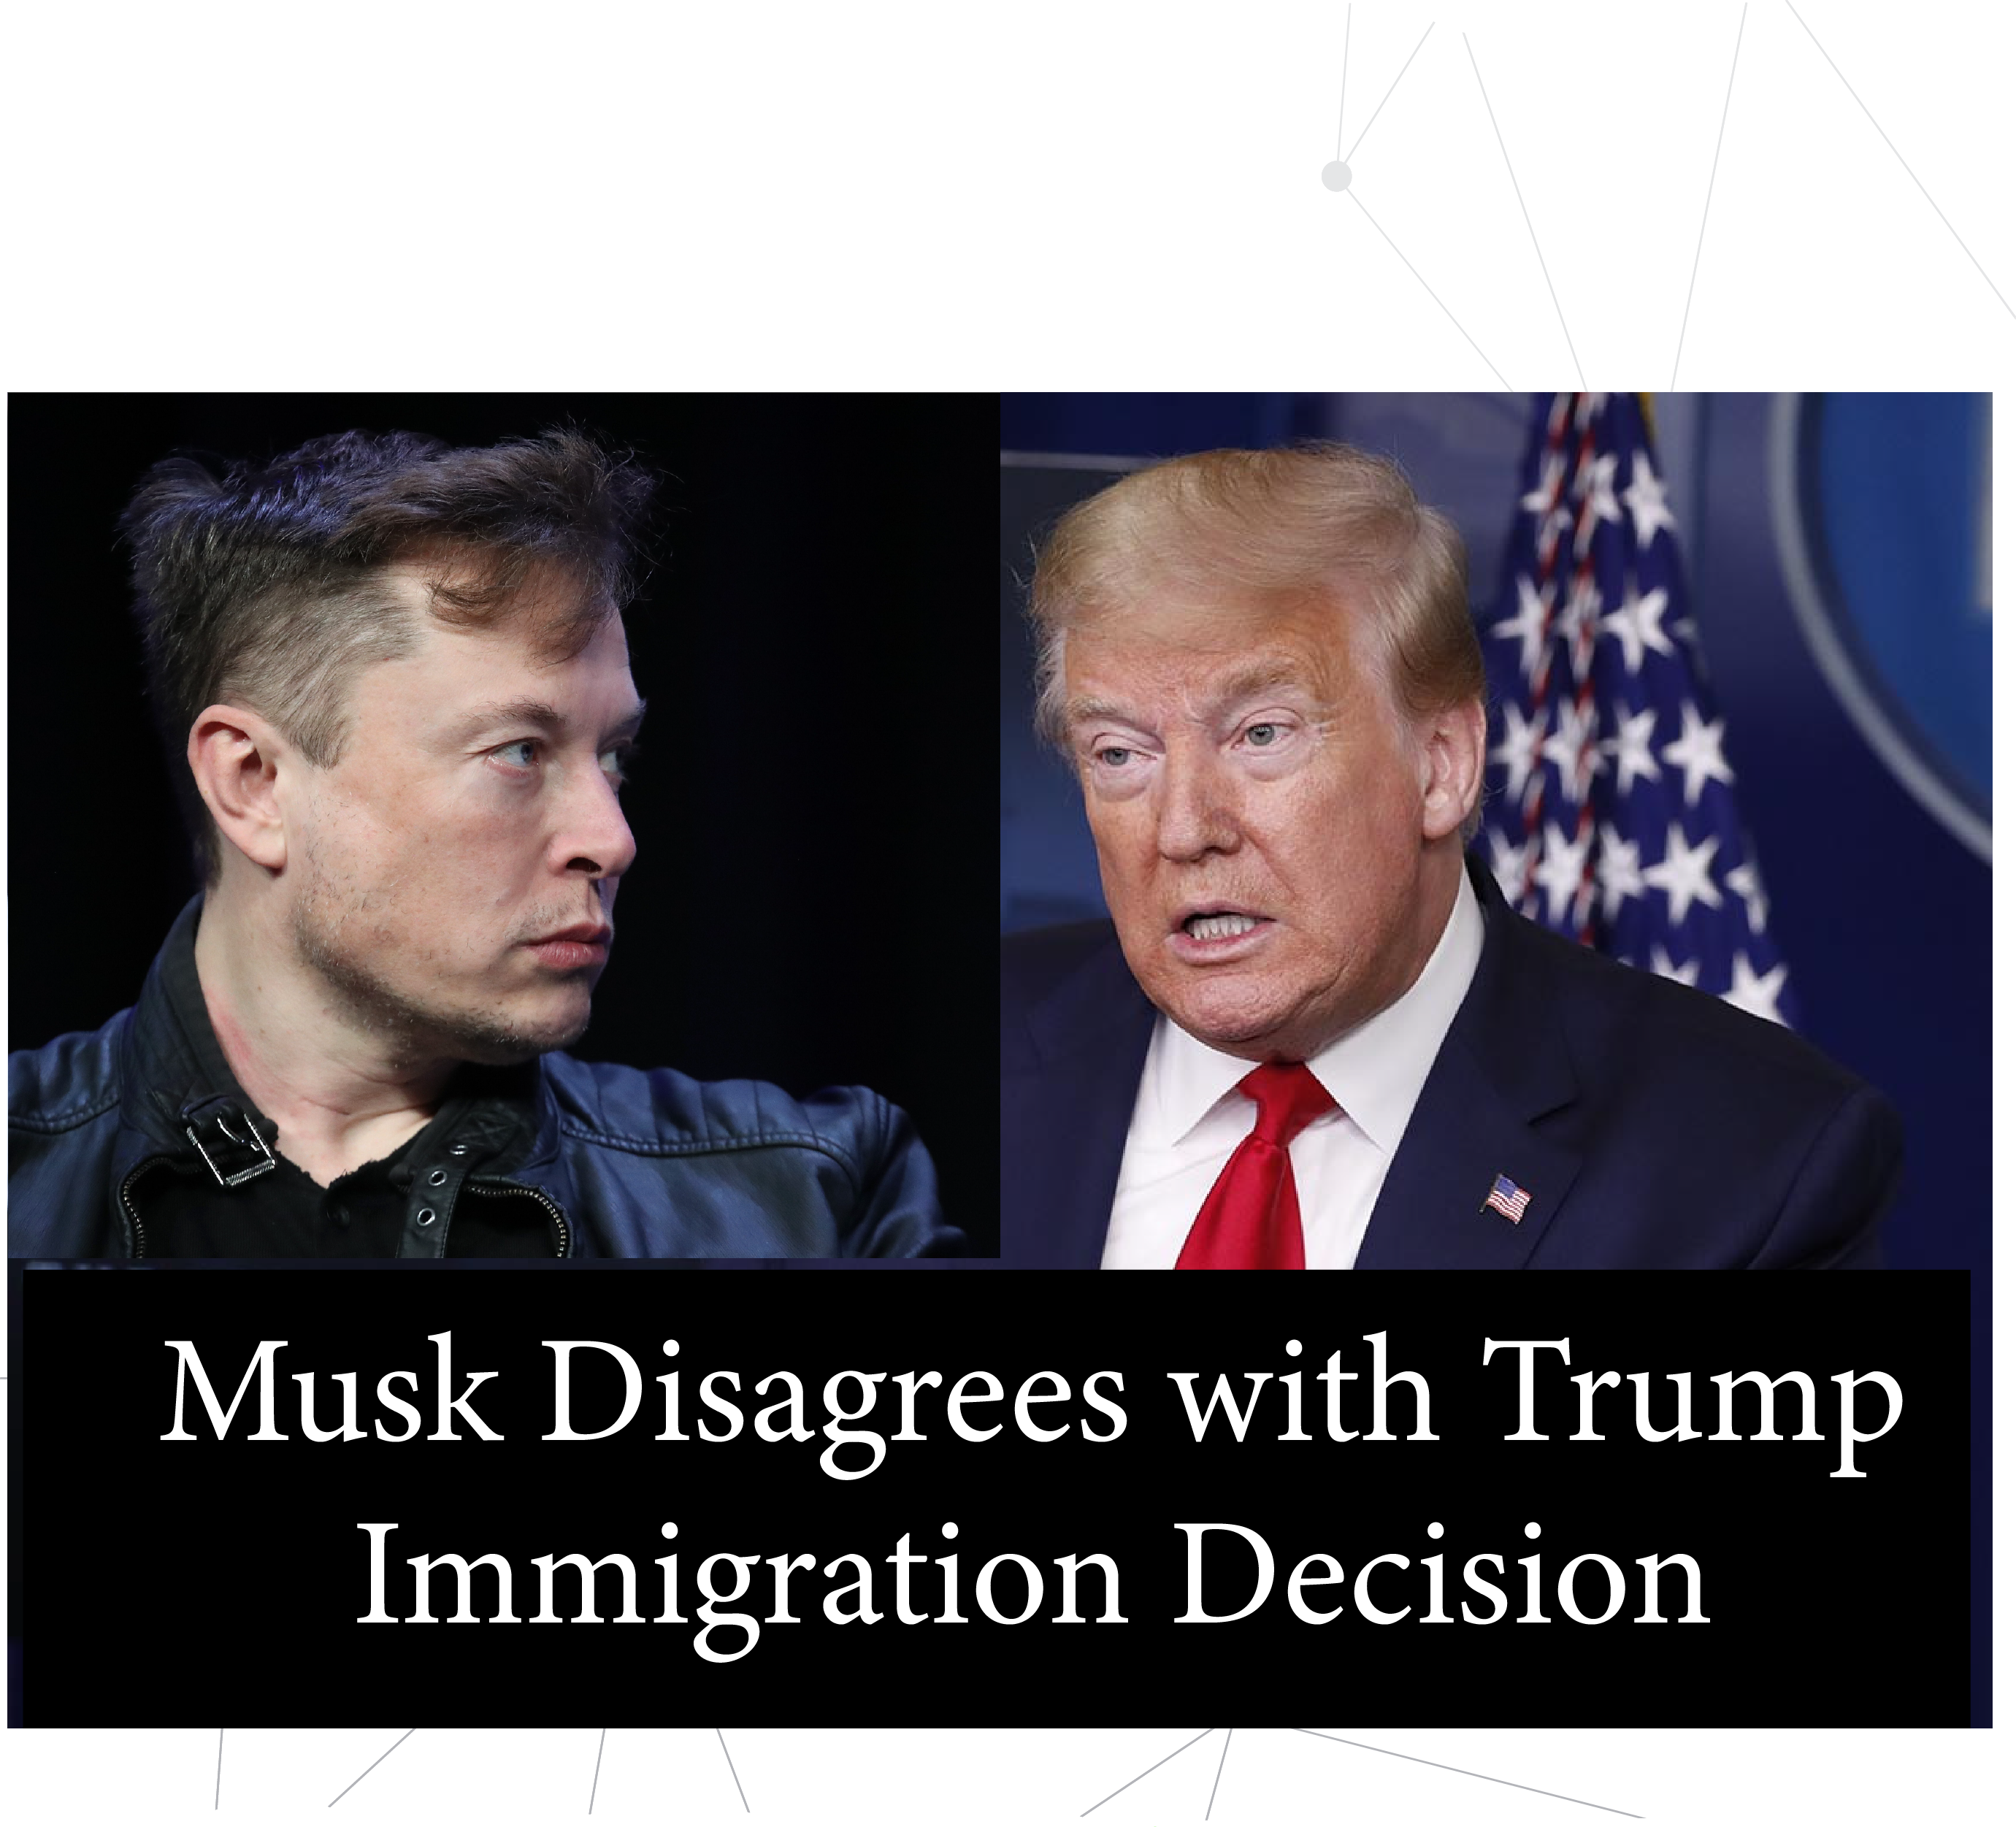 Musk Disagrees with Trump Immigration Decision